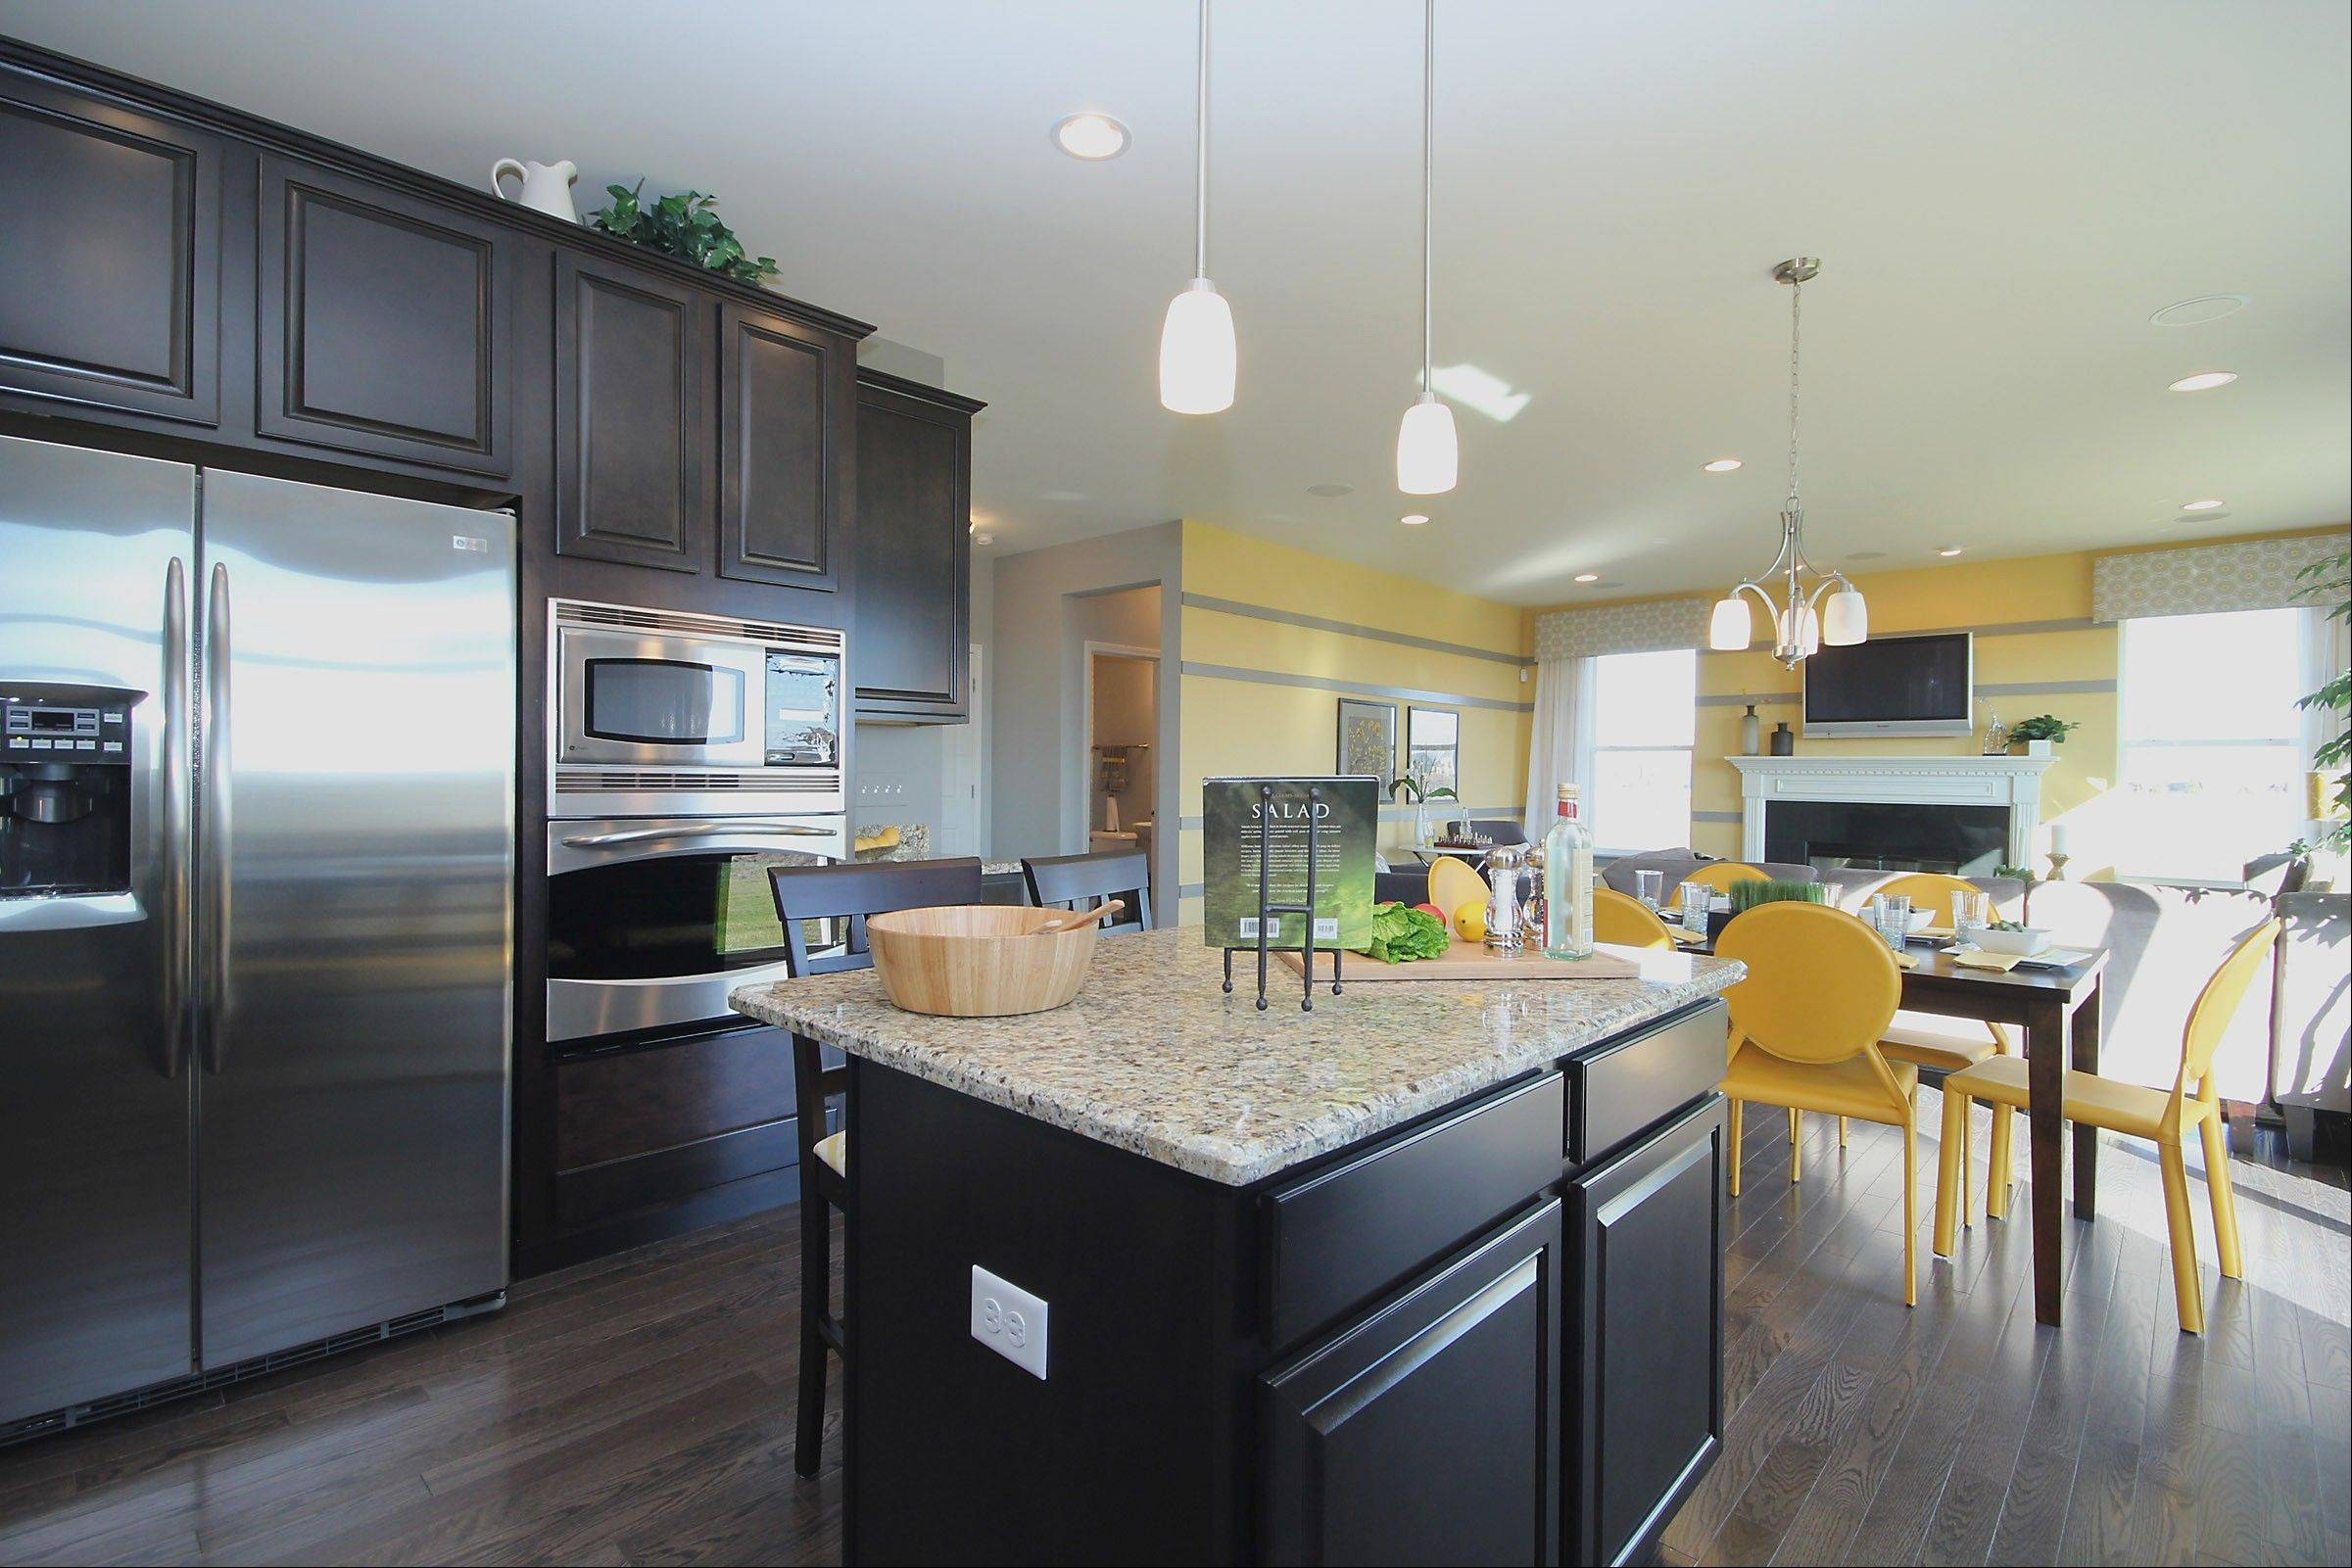 Eleni Interiors of Naperville decorated this kitchen and model for Ryland Homes' Ingham Park community in Aurora.